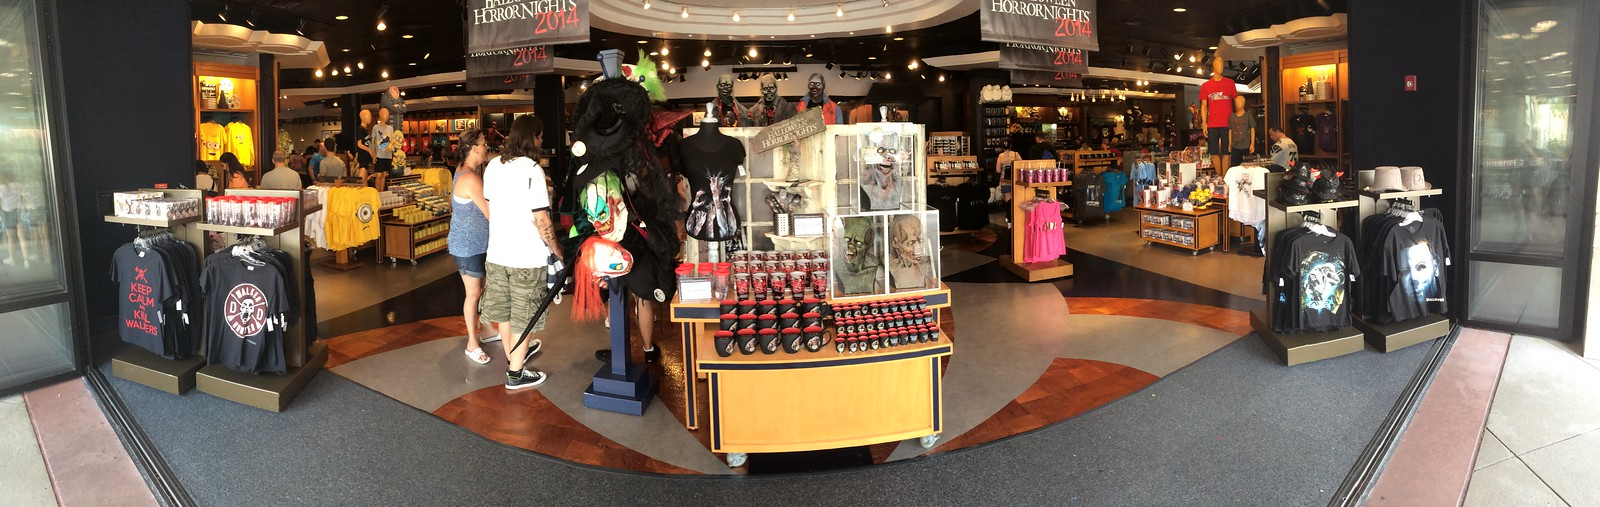 15316451835 61872ed733 h HHN 24: The Merchandise of HHN 24